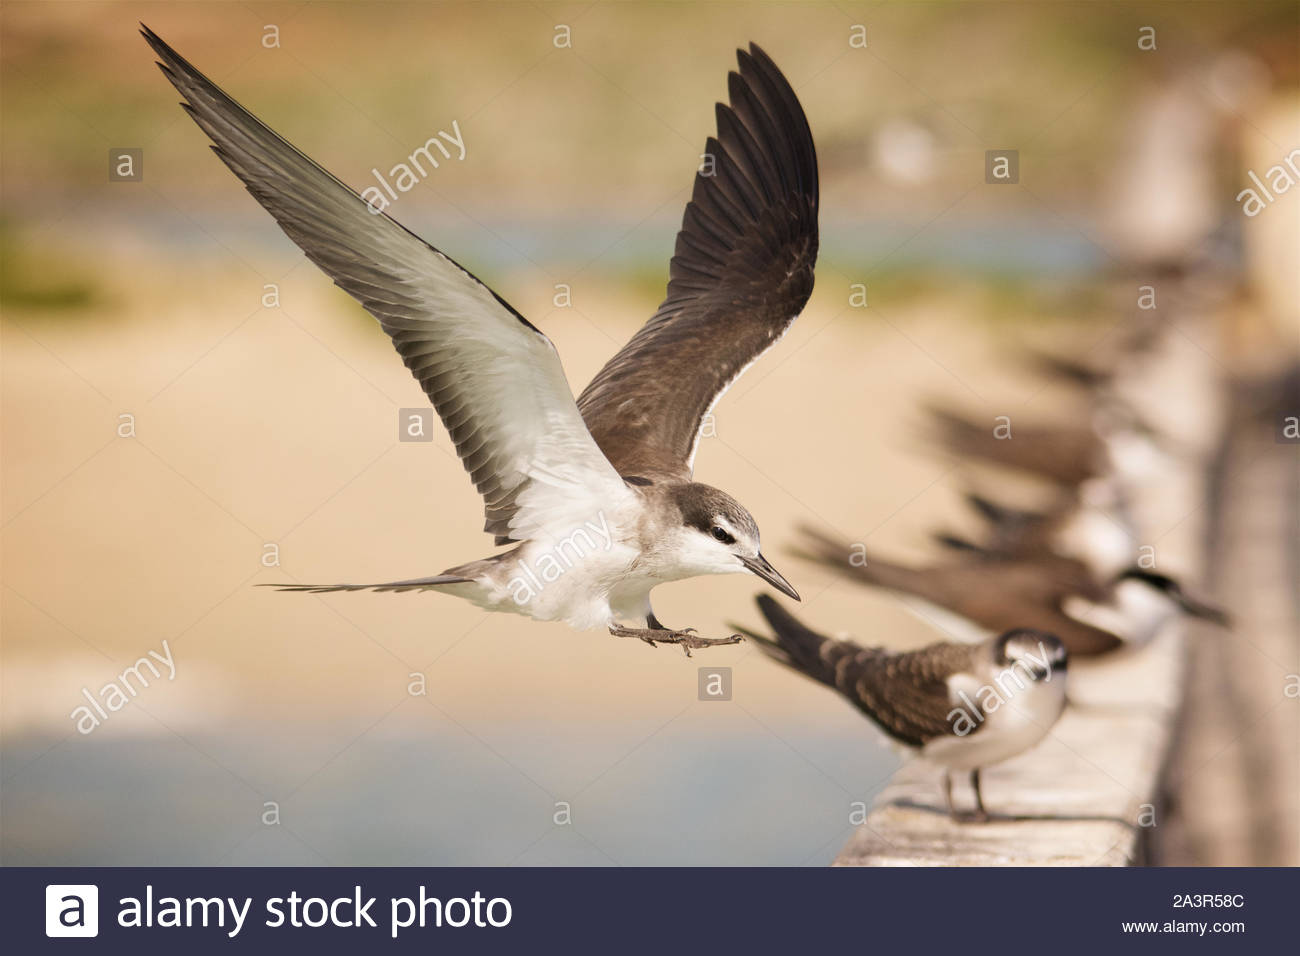 a-juvenile-bridled-tern-coming-in-to-land-alongside-a-row-of-other-bridled-terns-at-penguin-island-western-australia-2A3R58C.jpg